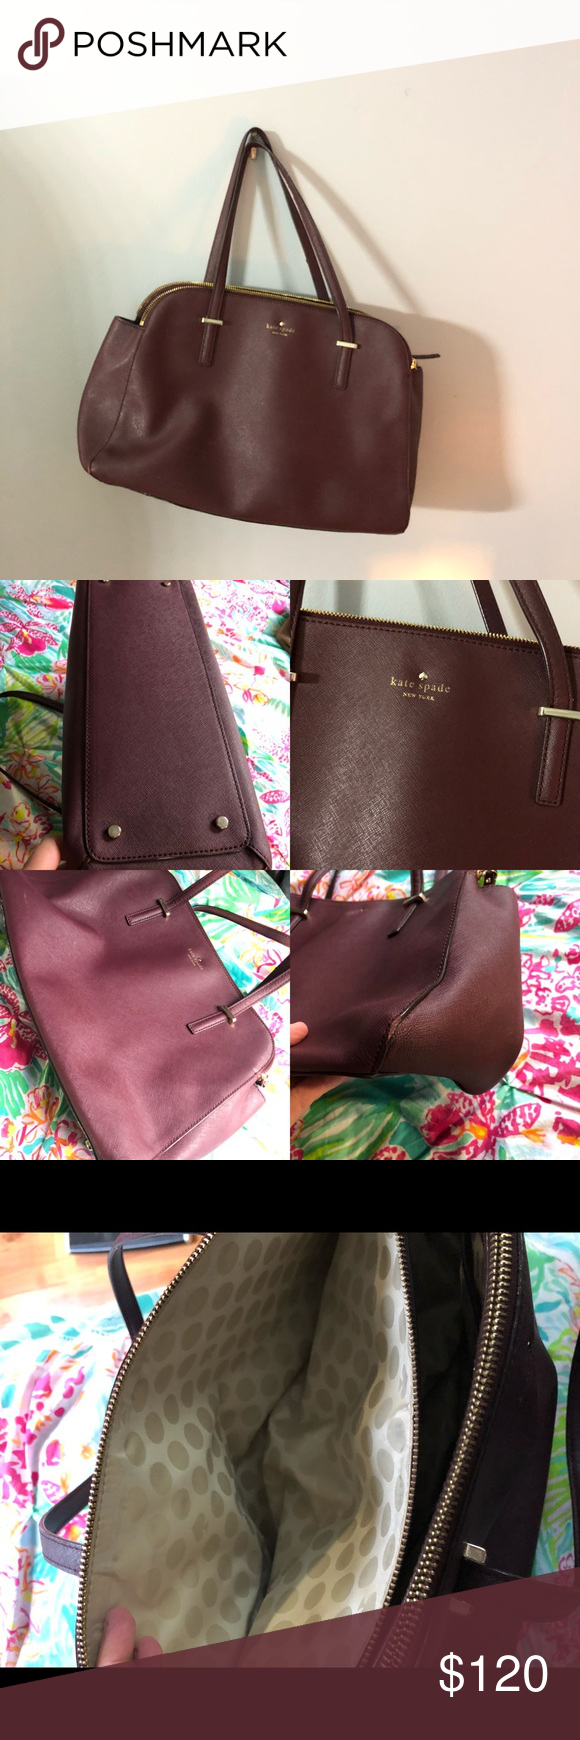 Kate Spade Purse Cleaner